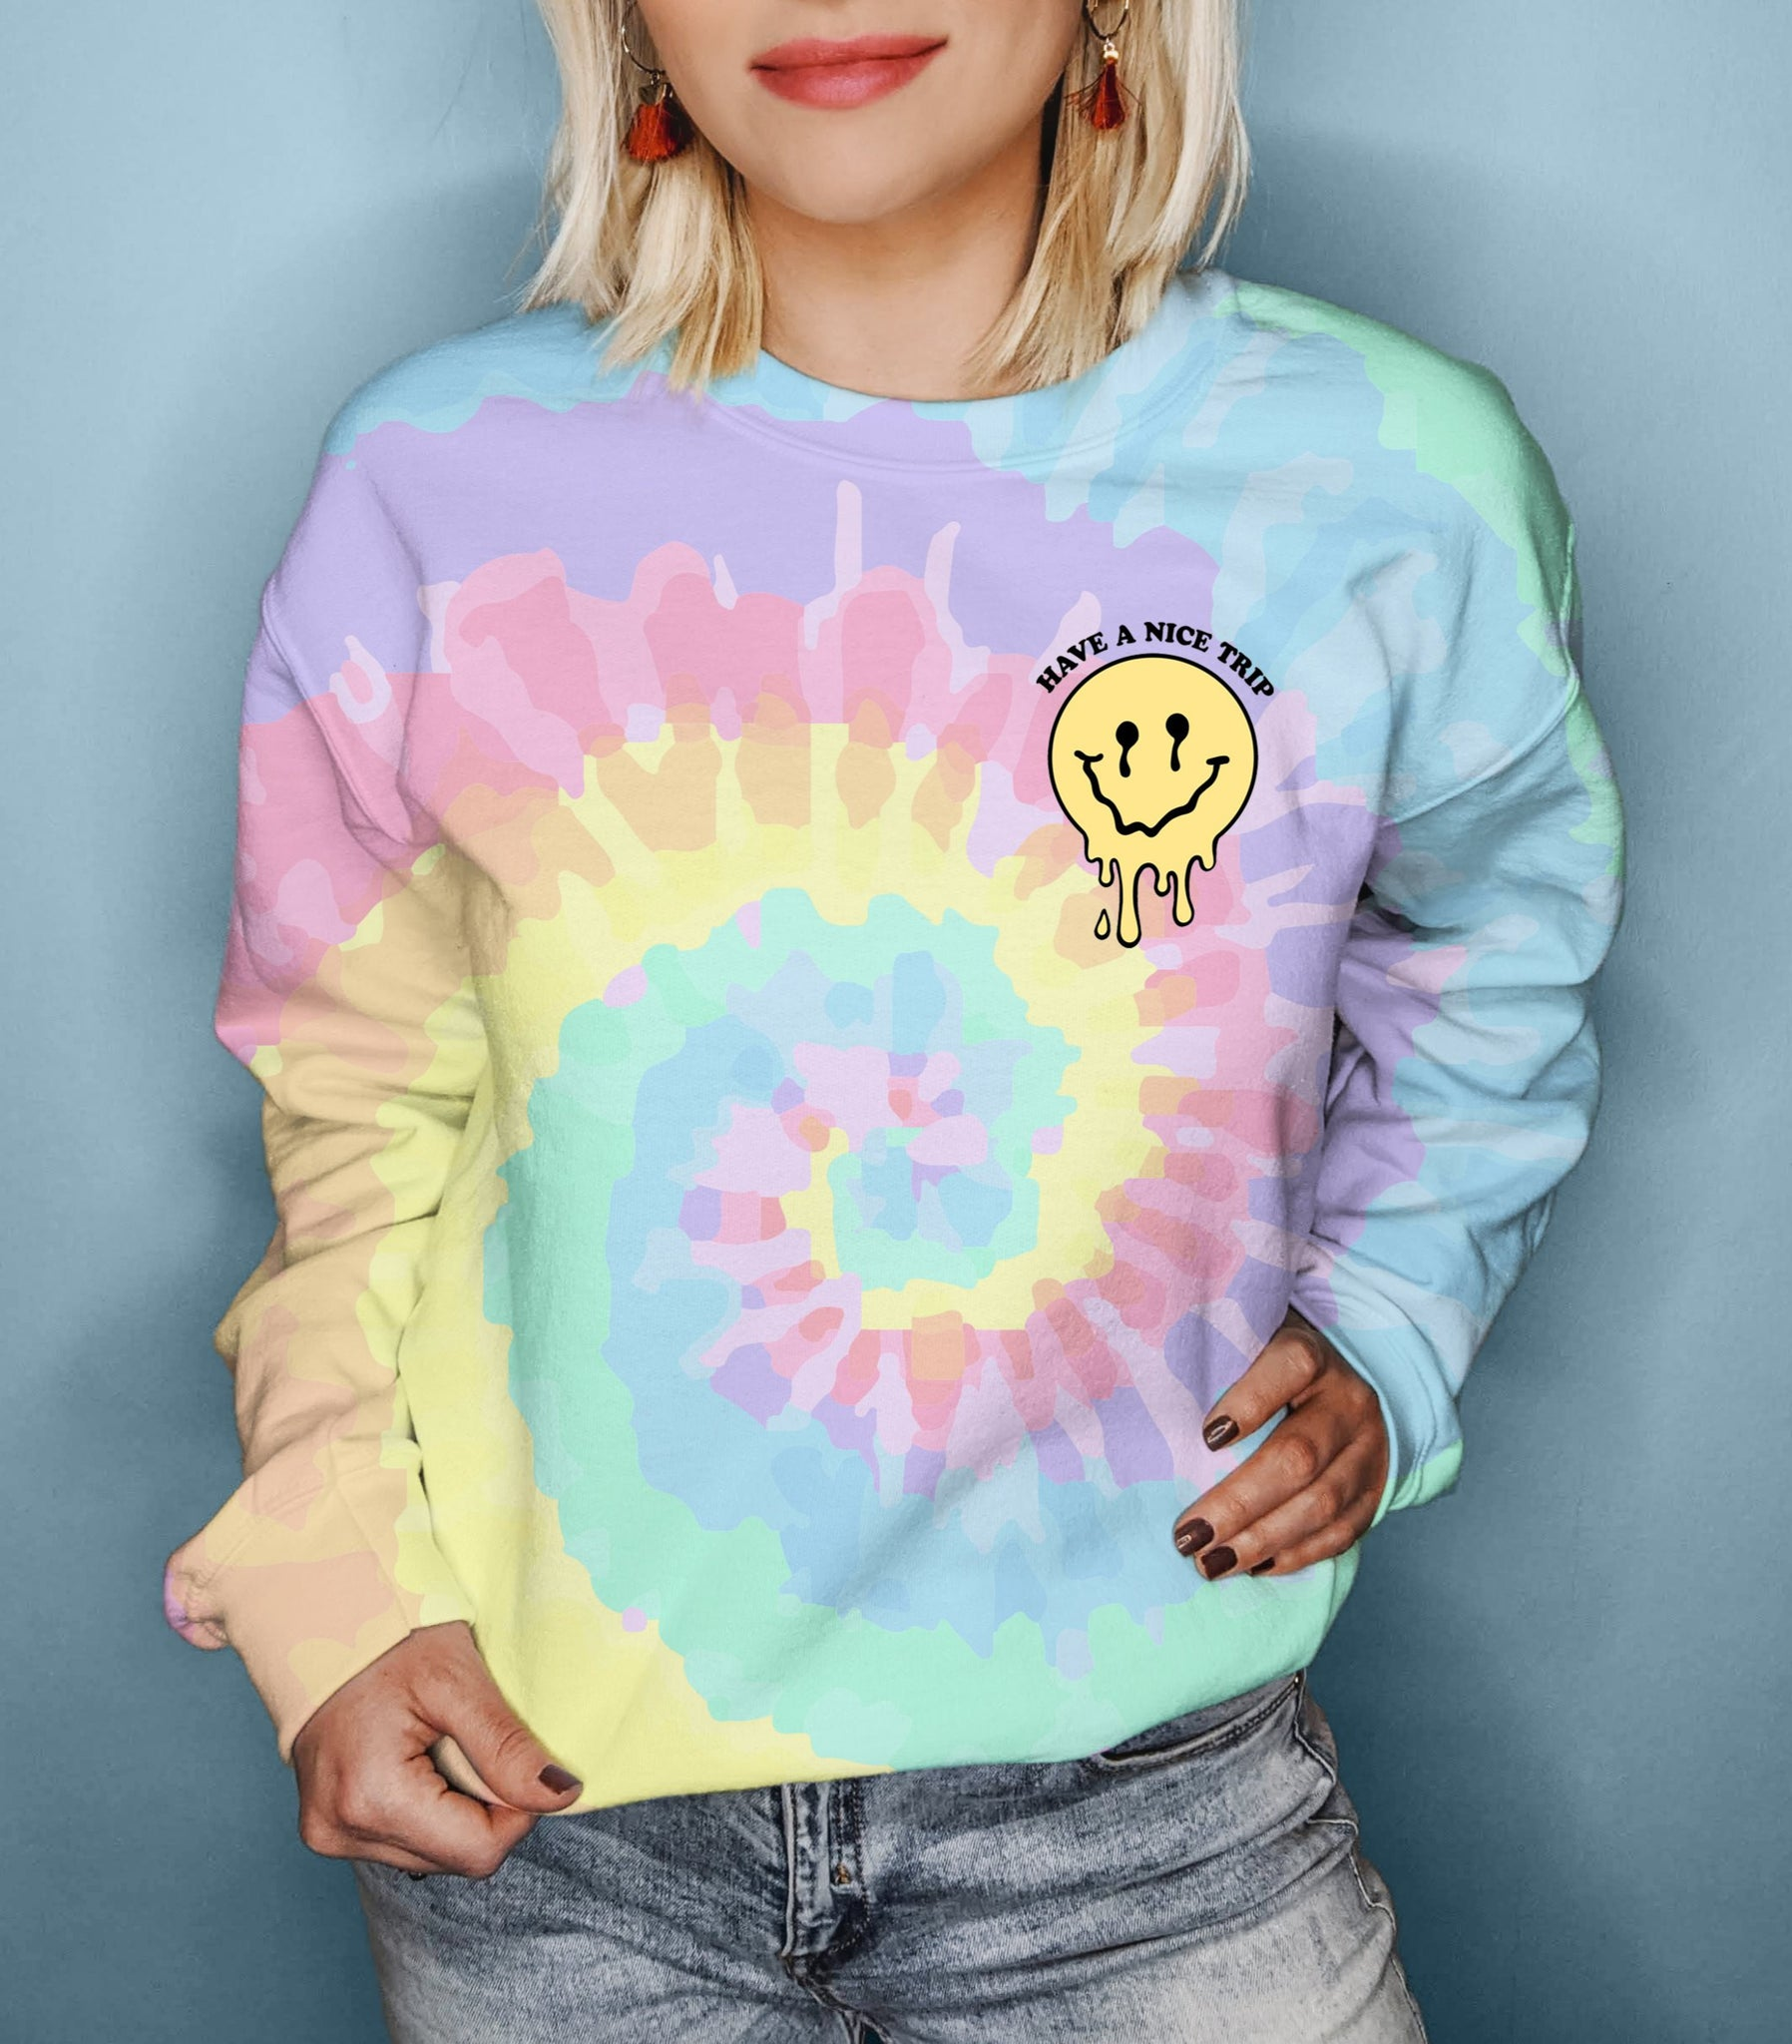 Tie-dye sweatshirt with melted smiley face that says have a nice trip - HighCiti